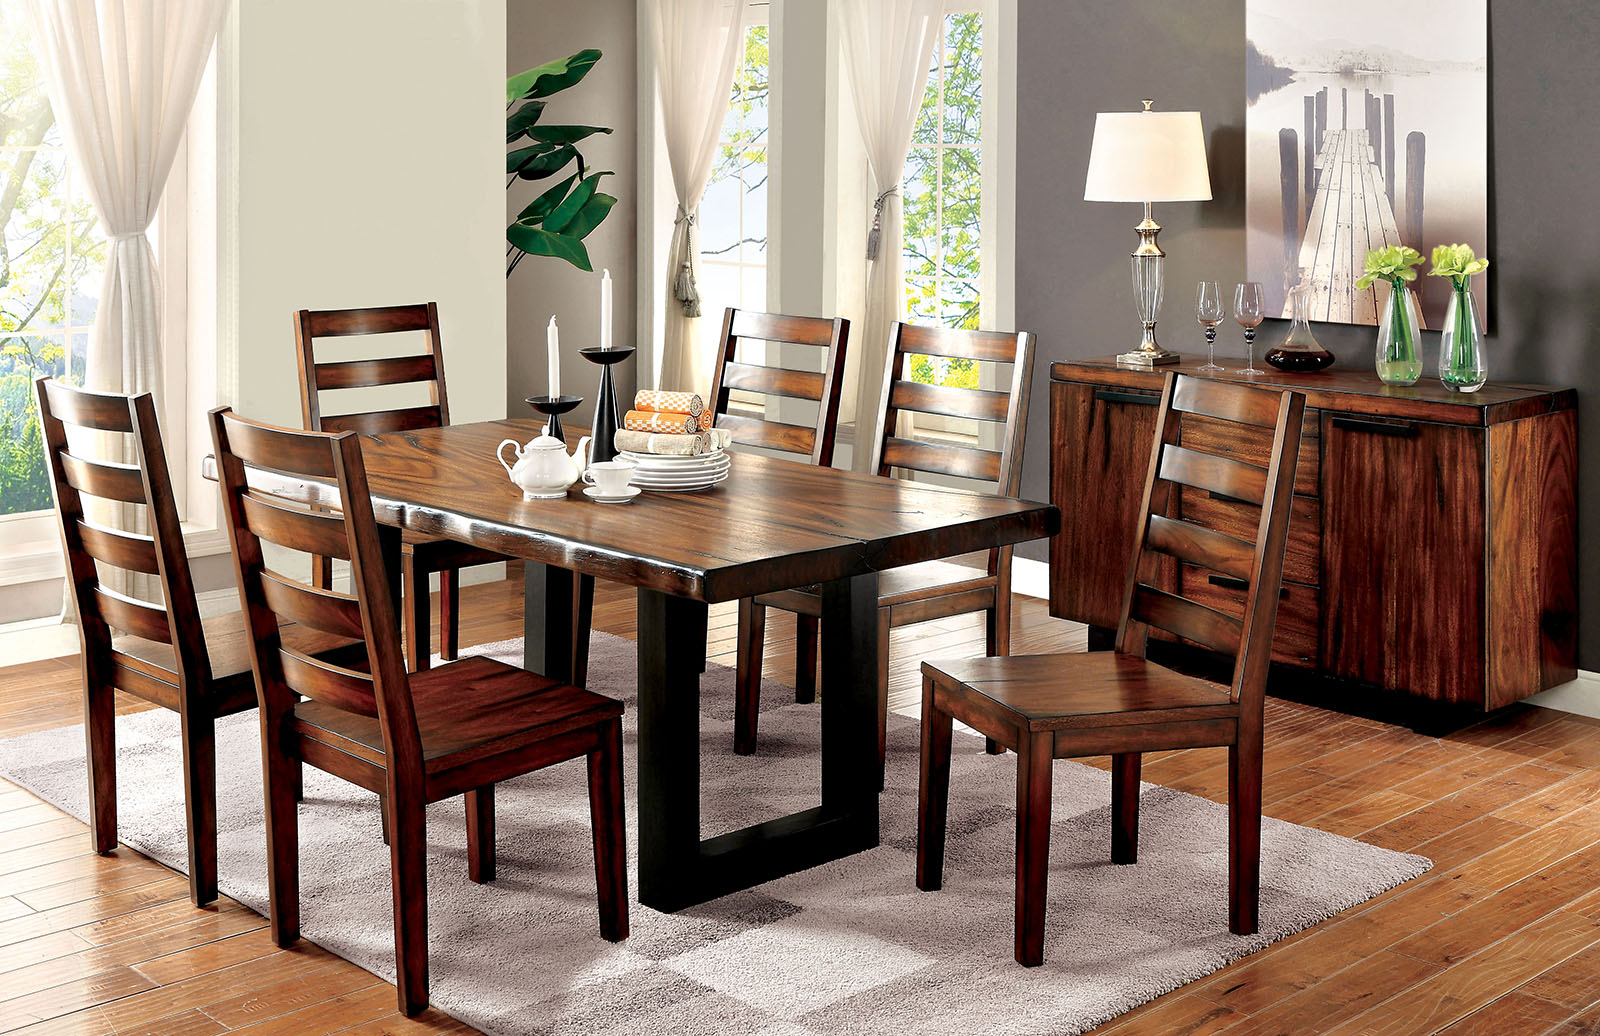 Contemporary dining room furniture sets